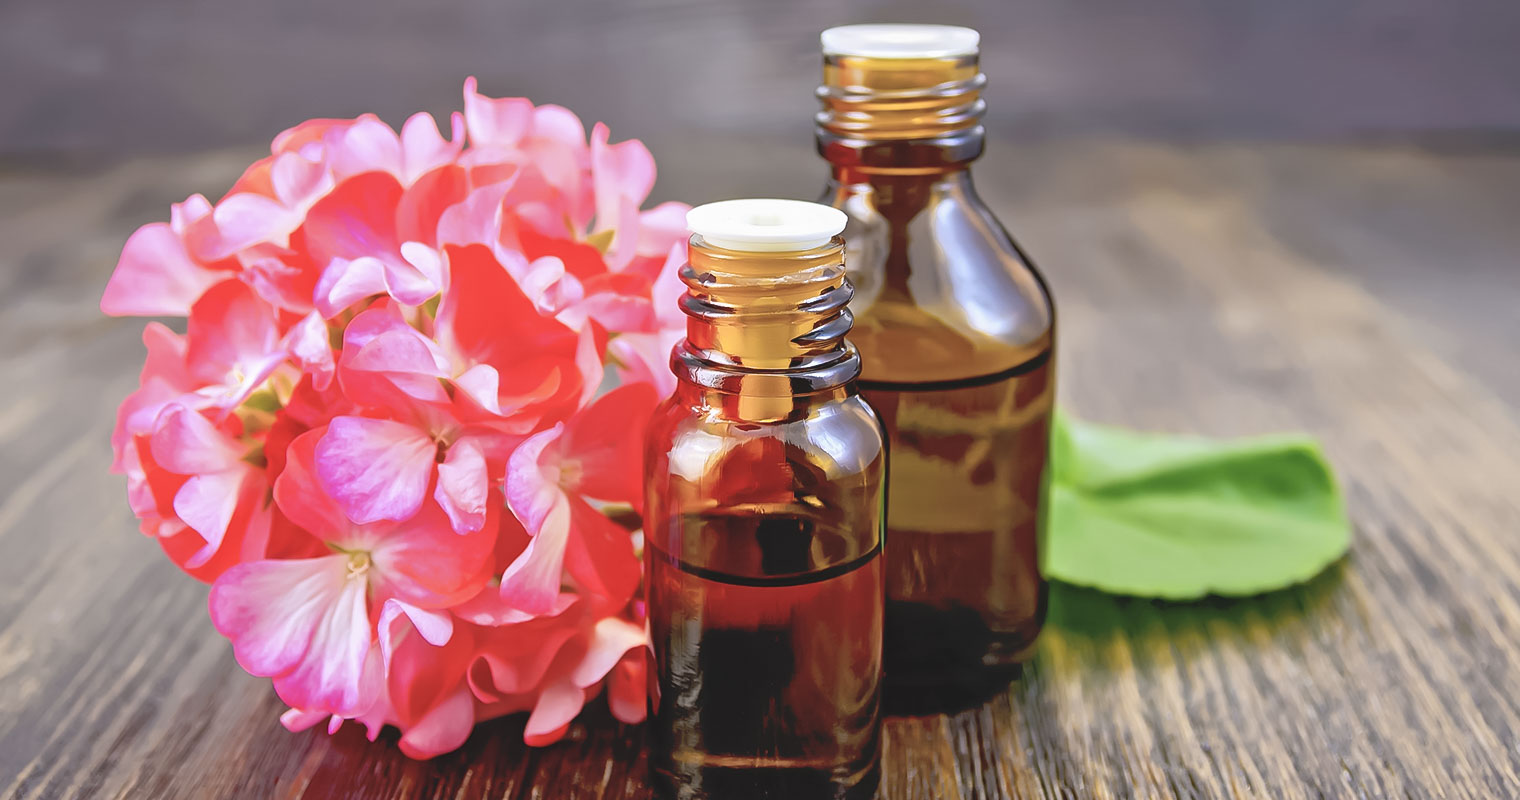 2 bottles of Geranium oil in front of Geranium flower on a table